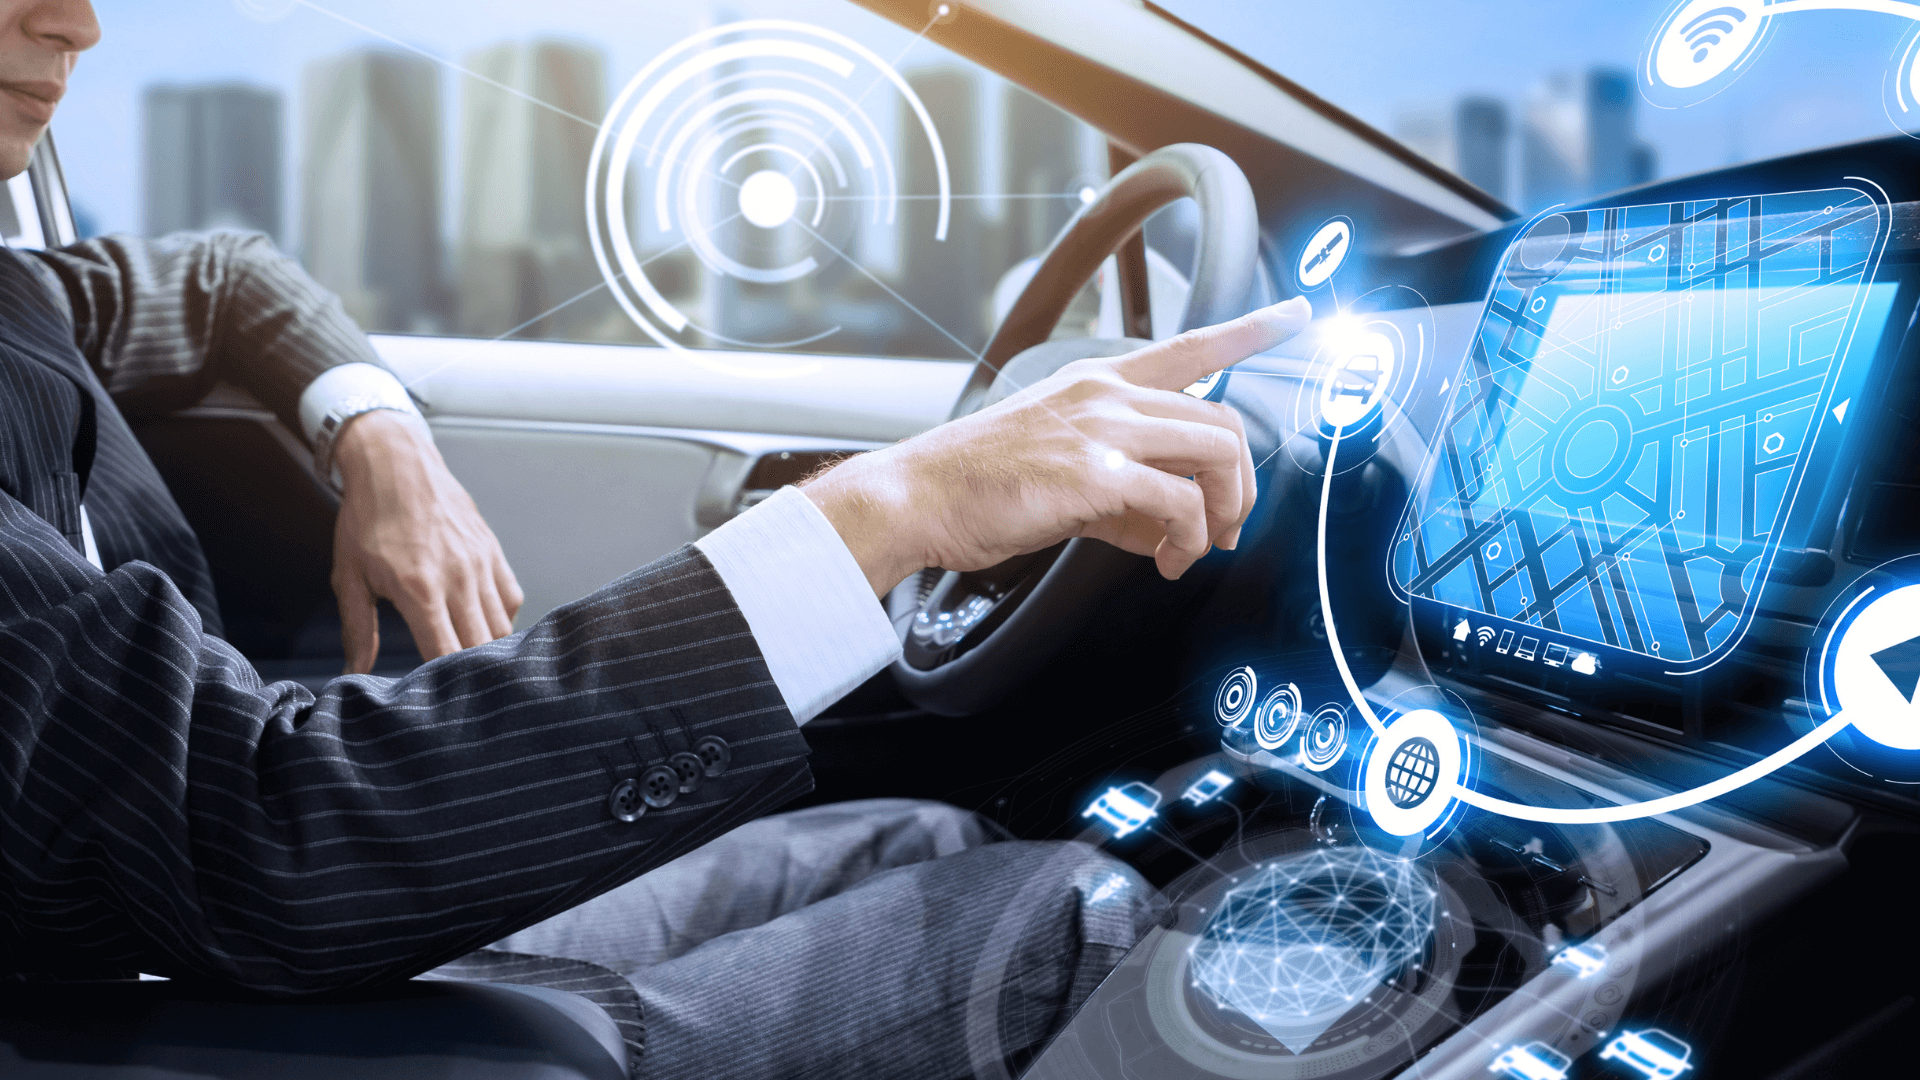 Intricacies Complexities and Development of in Vehicle Infotainment Systems